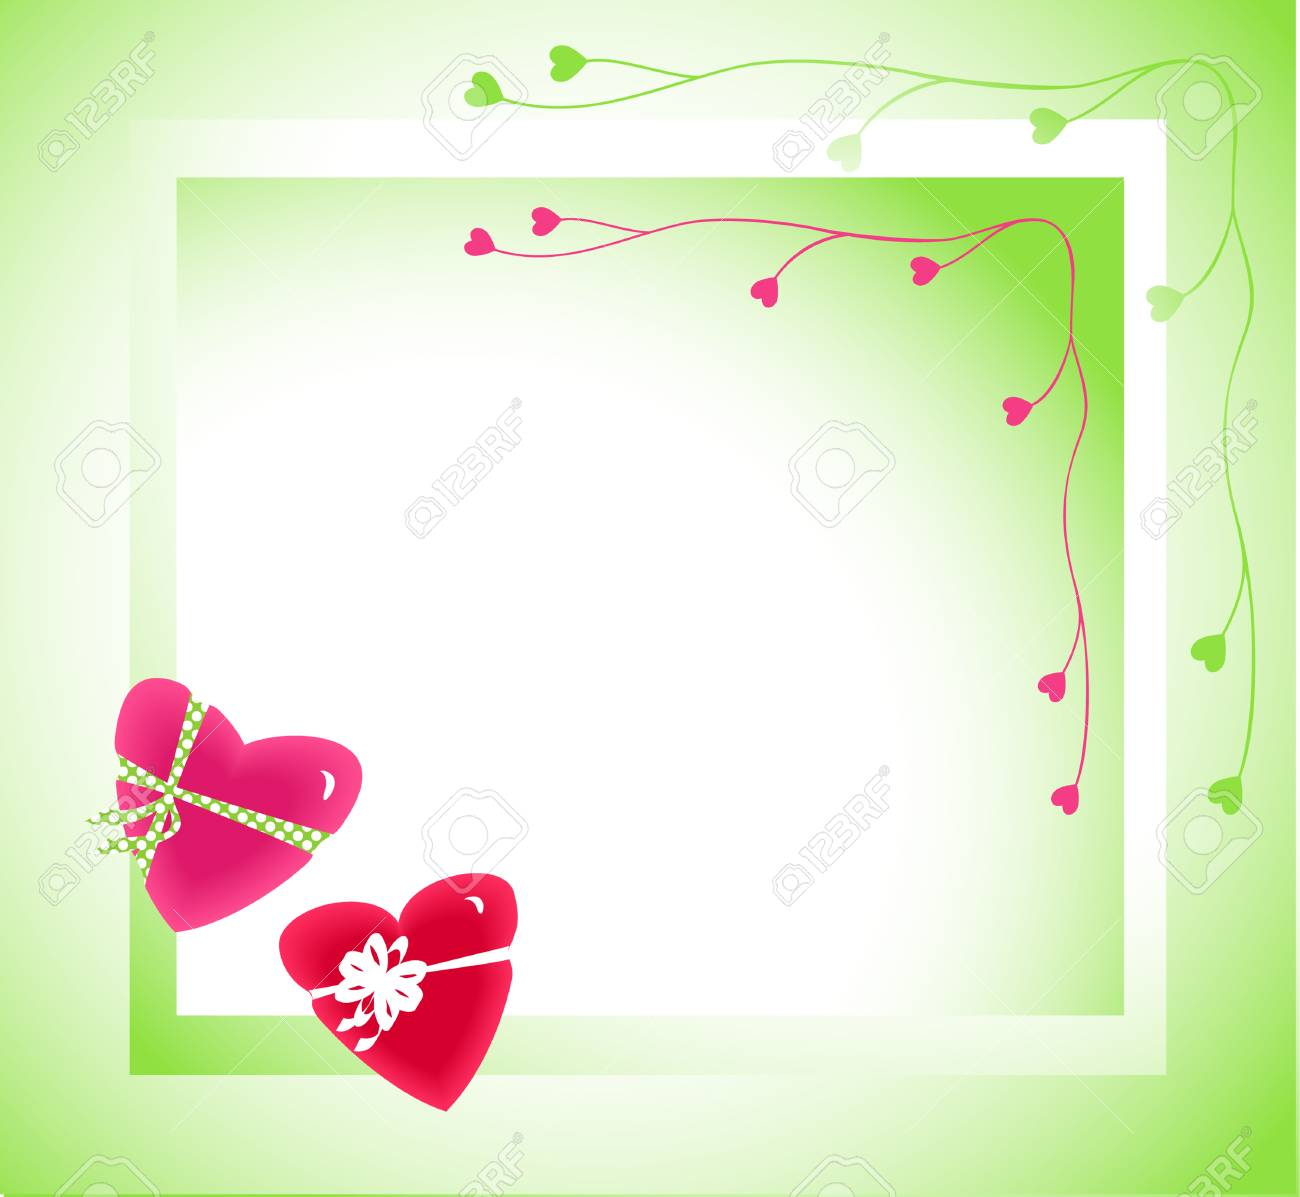 Background for a card to the Valentine's day Stock Vector - 2357831